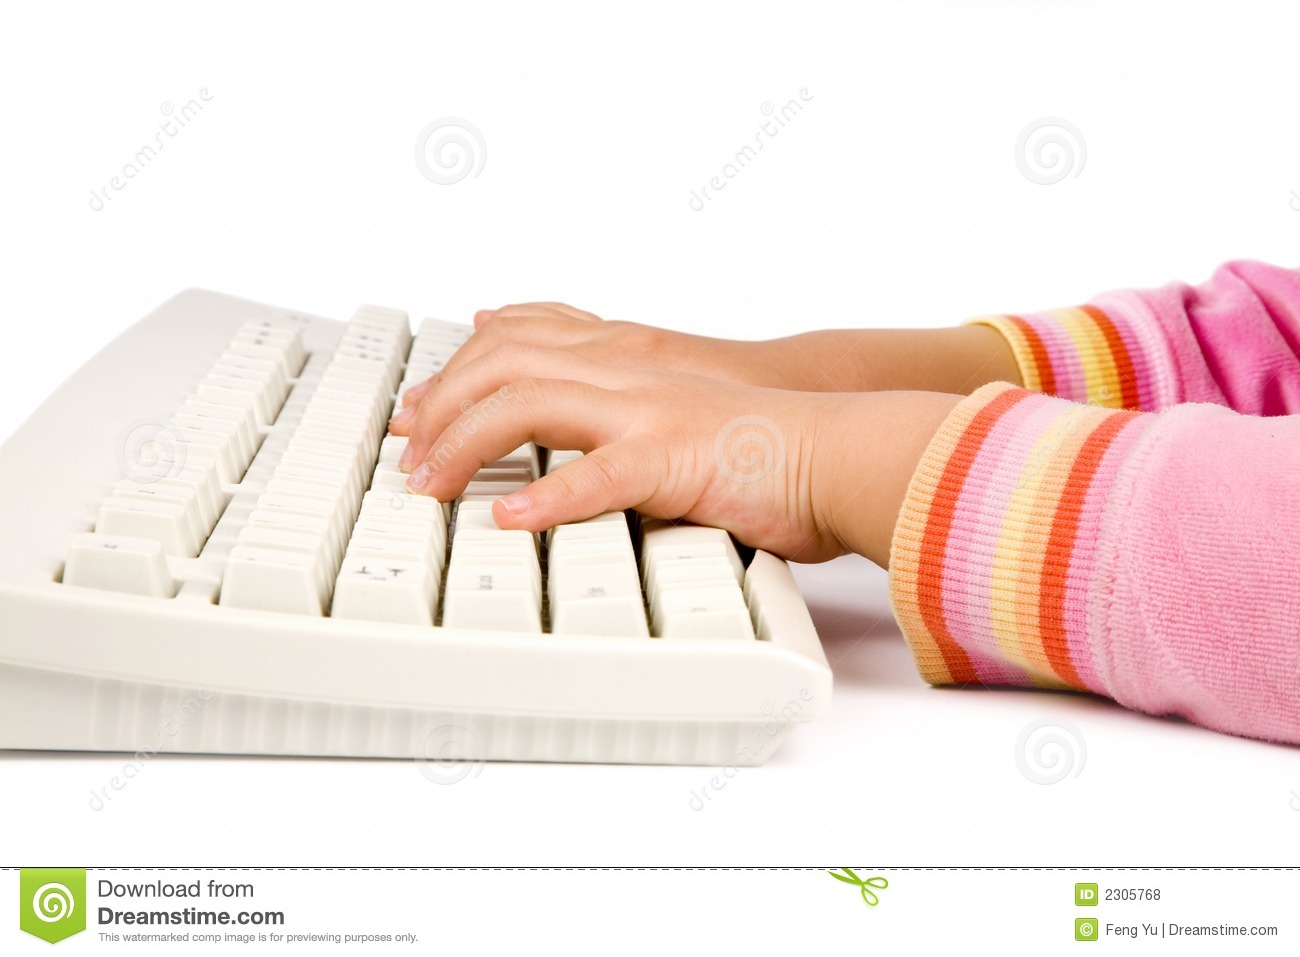 Children learning typing